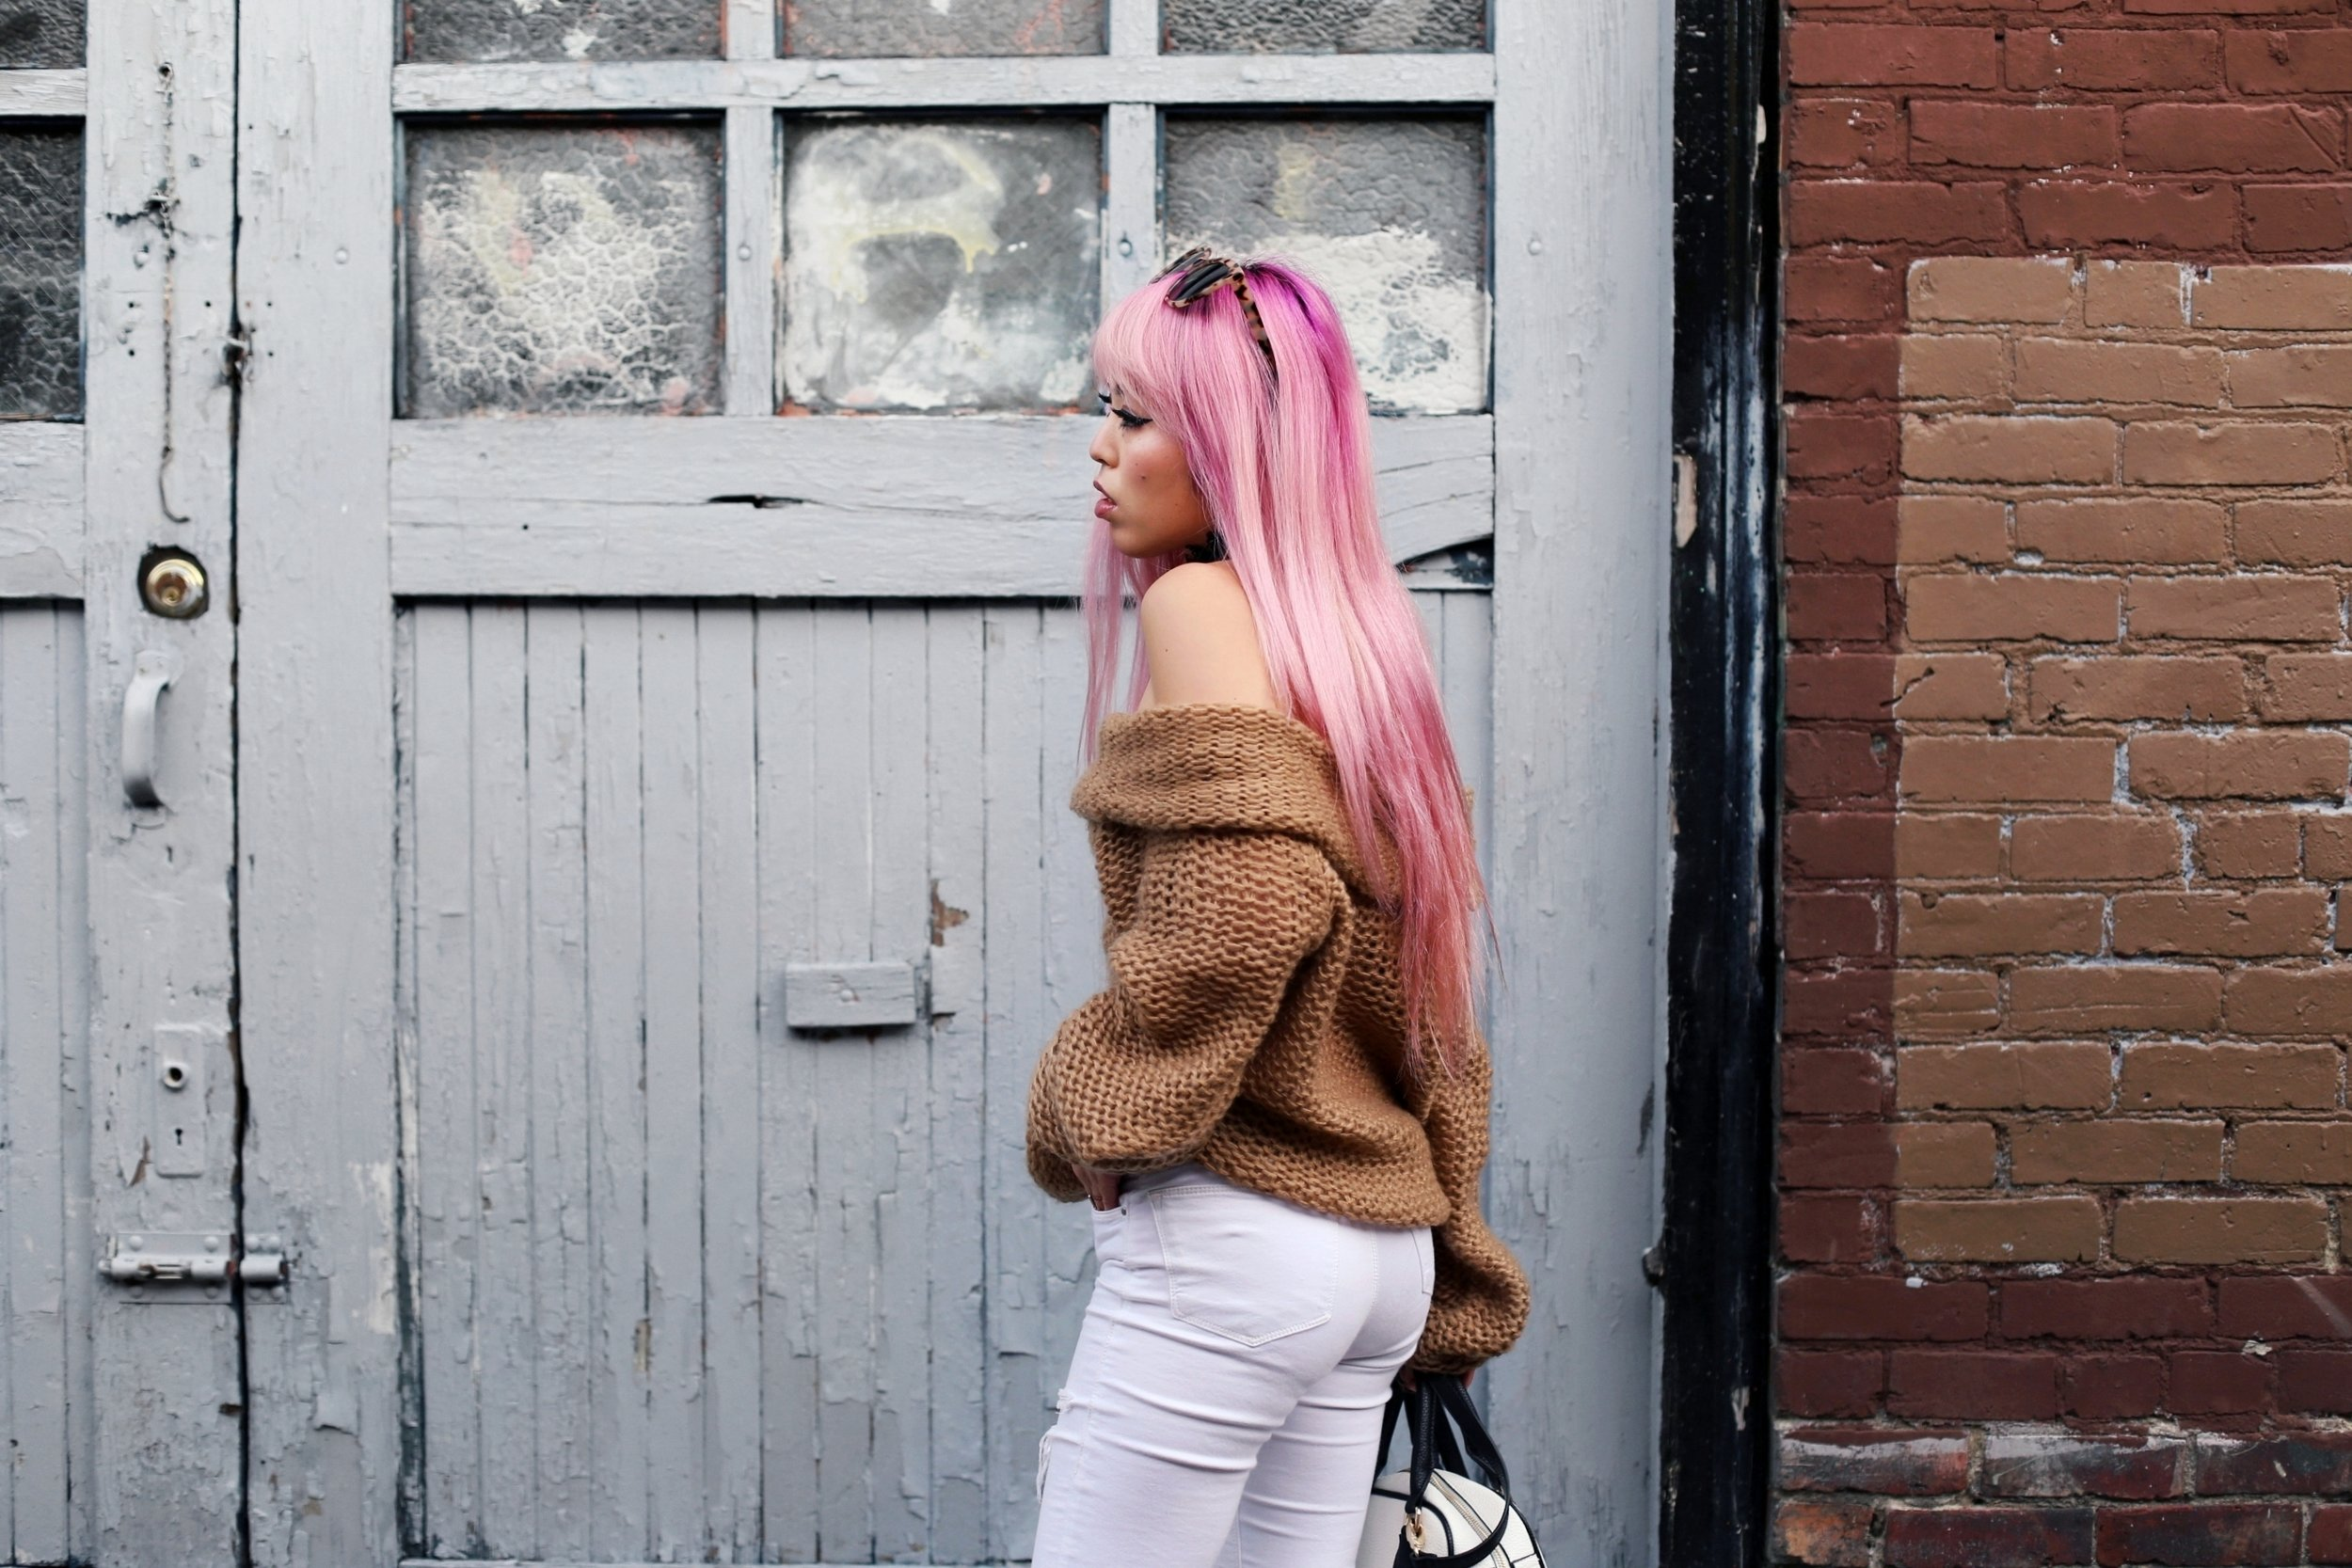 Urban Outfitters Sunglasses_Camel Off The Shoulder Sweater_TOPSHOP white jeans_ZARA Bag_ASOS Snake Skin Heels_Shop Dixi Lace Choker_Aika's Love Closet_Seattle Fashion Blogger_Japanese_Pink Hair_Colored Hair 14